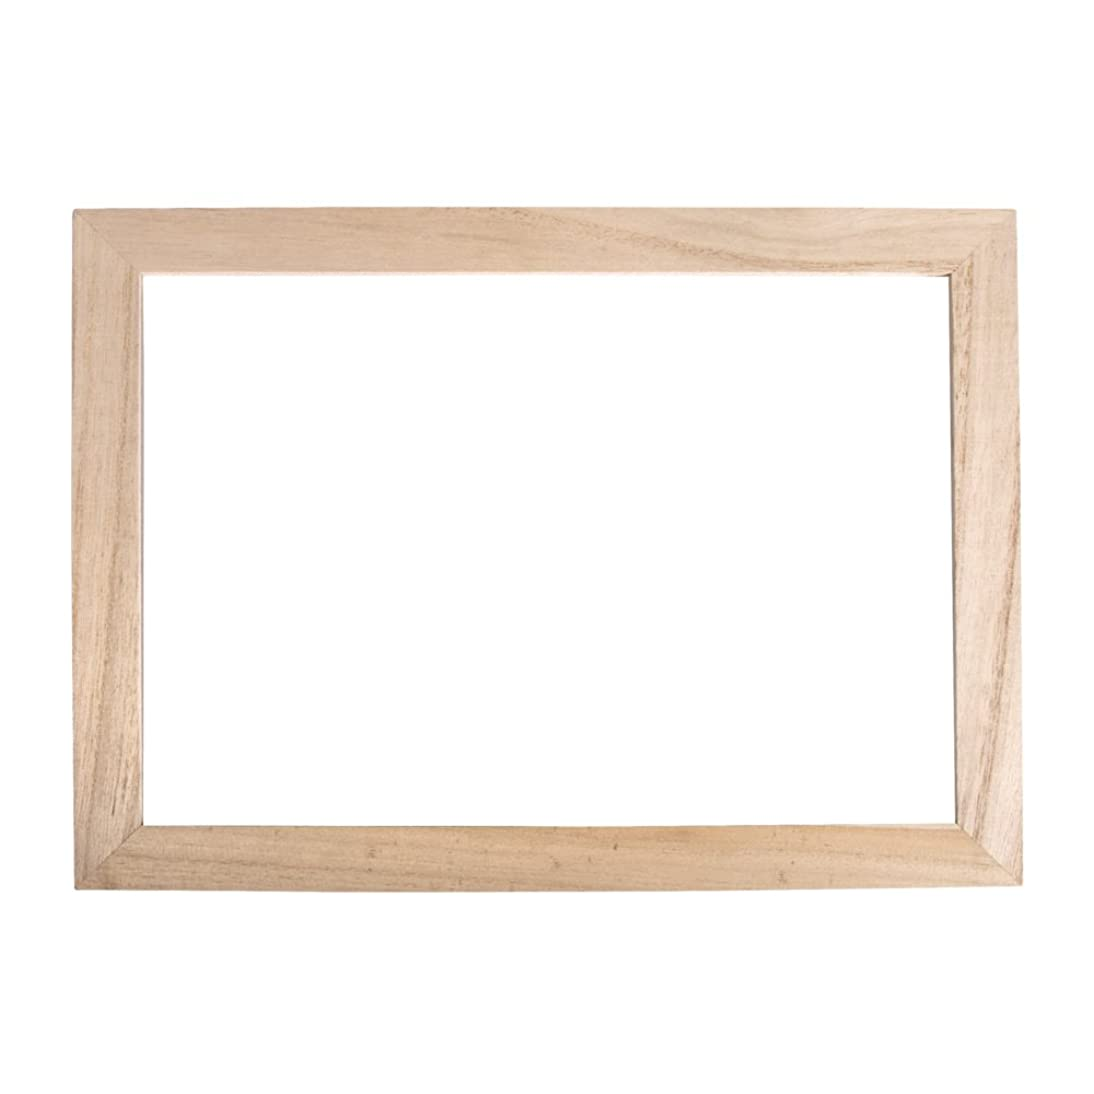 RAYHER HOBBY Wooden Frame with Double Acrylic Glass, Wood, Brown, 30 x 21 x 1 cm